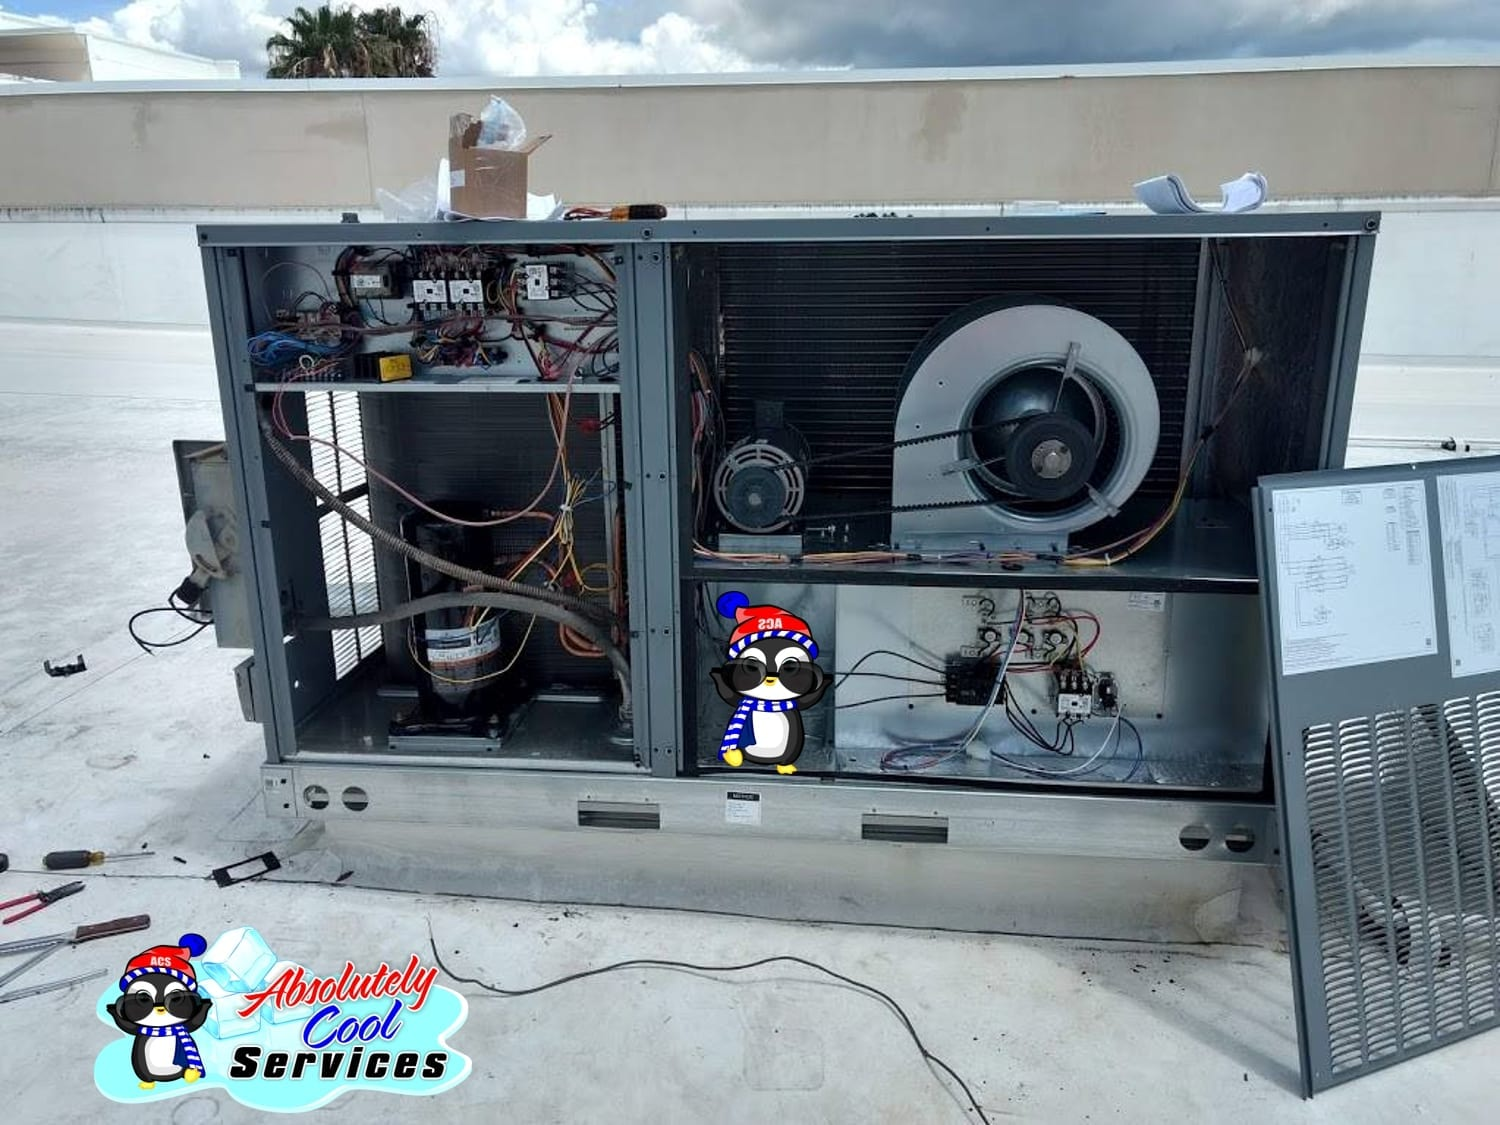 Roof Air Conditioning | HVAC Repair Service near Greenacres